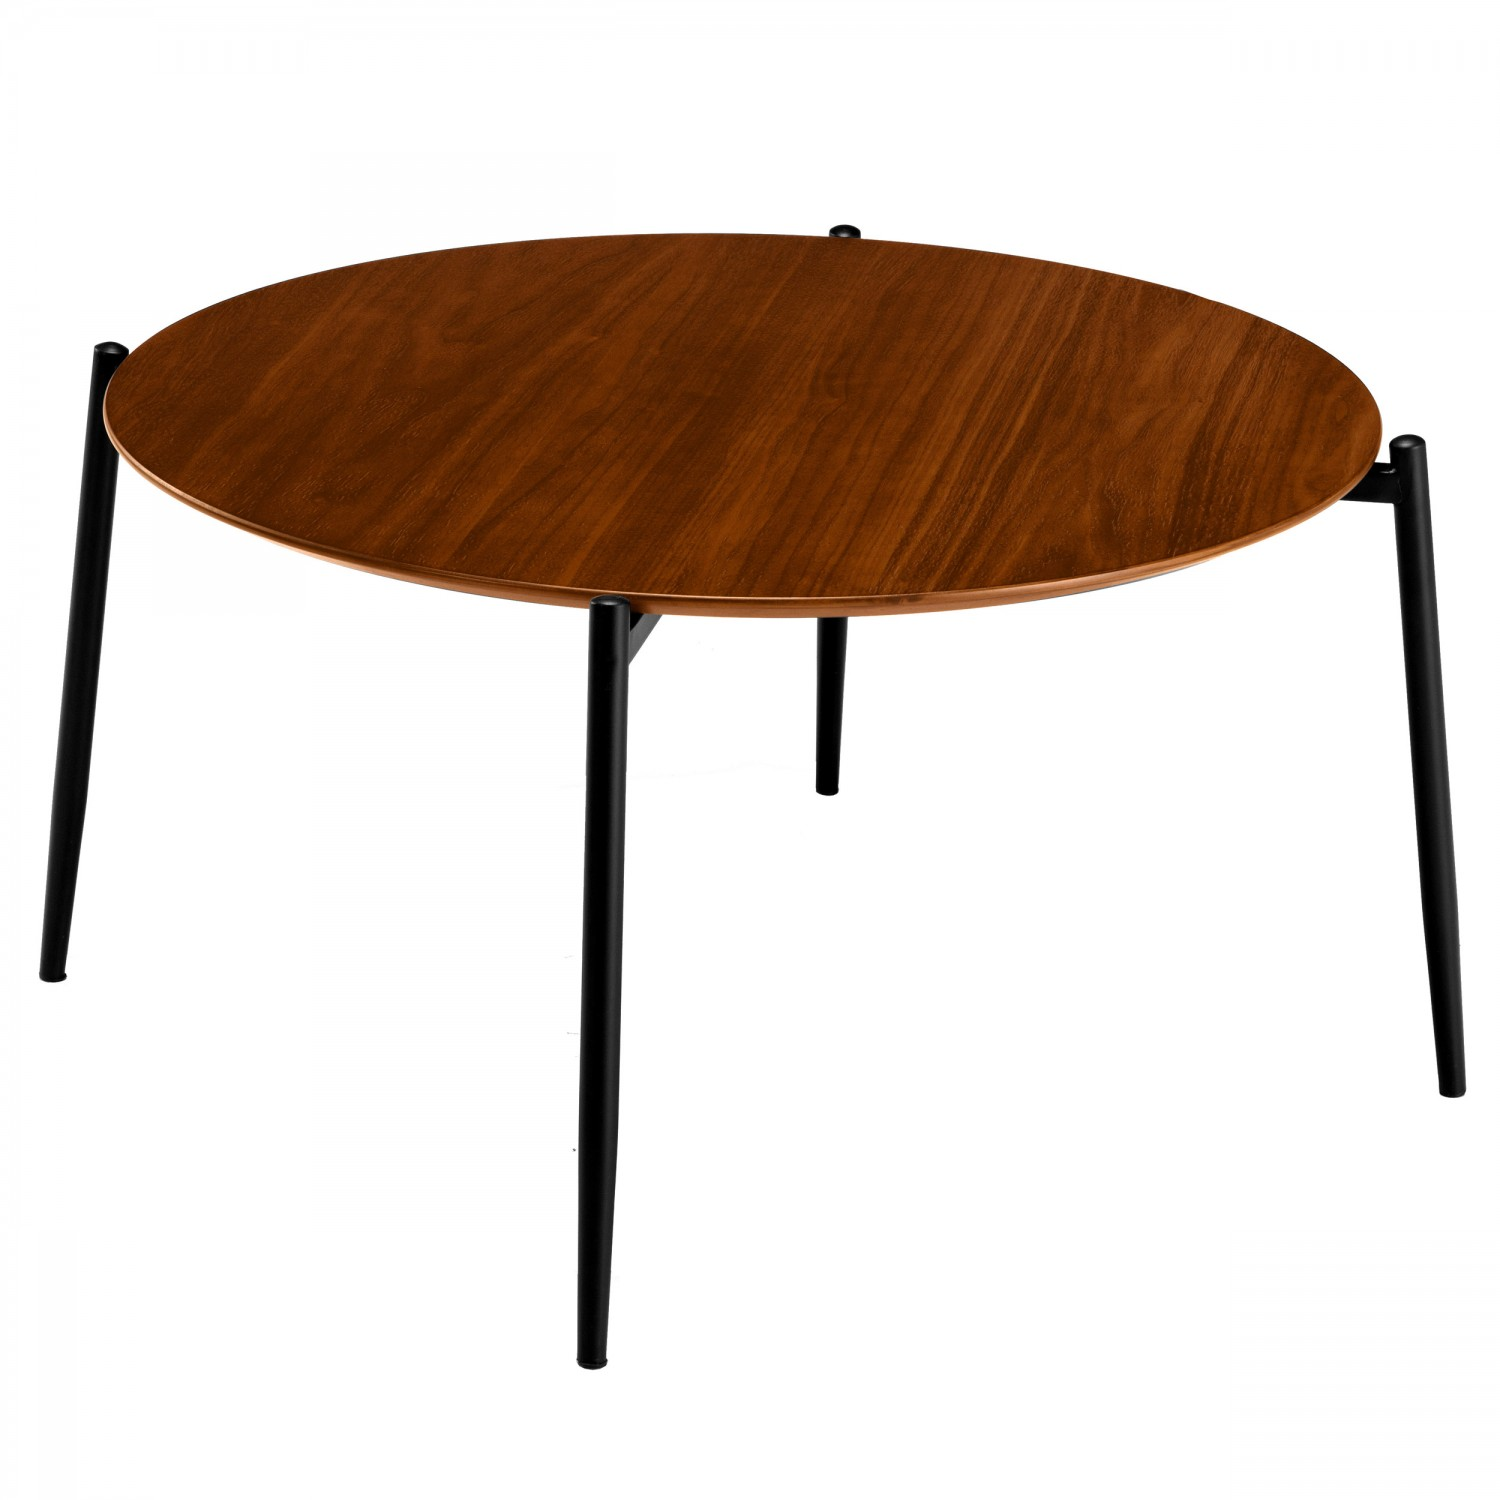 table basse ronde narsi en bois noir salon koya design. Black Bedroom Furniture Sets. Home Design Ideas